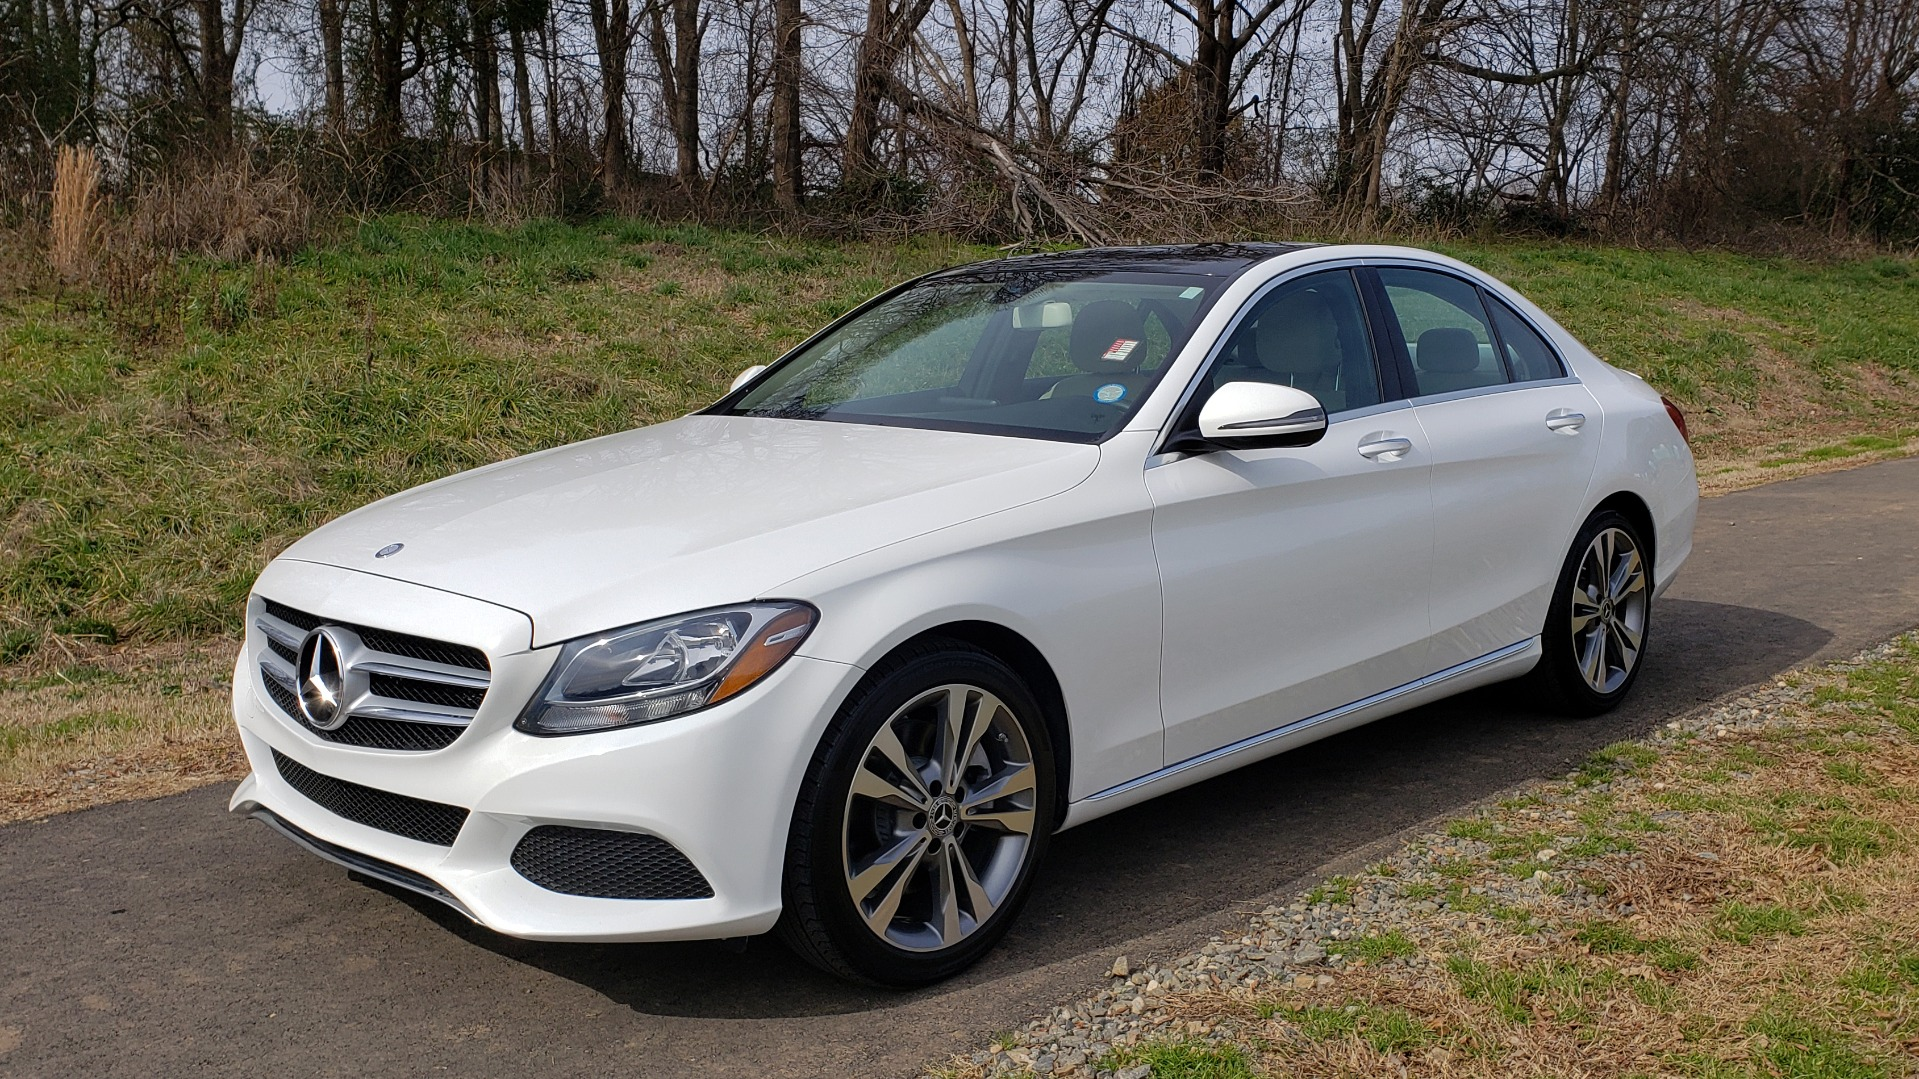 Used 2017 Mercedes-Benz C-CLASS C 300 / PREM PKG / PANO-ROOF / REARVIEW / HTD STS for sale Sold at Formula Imports in Charlotte NC 28227 1